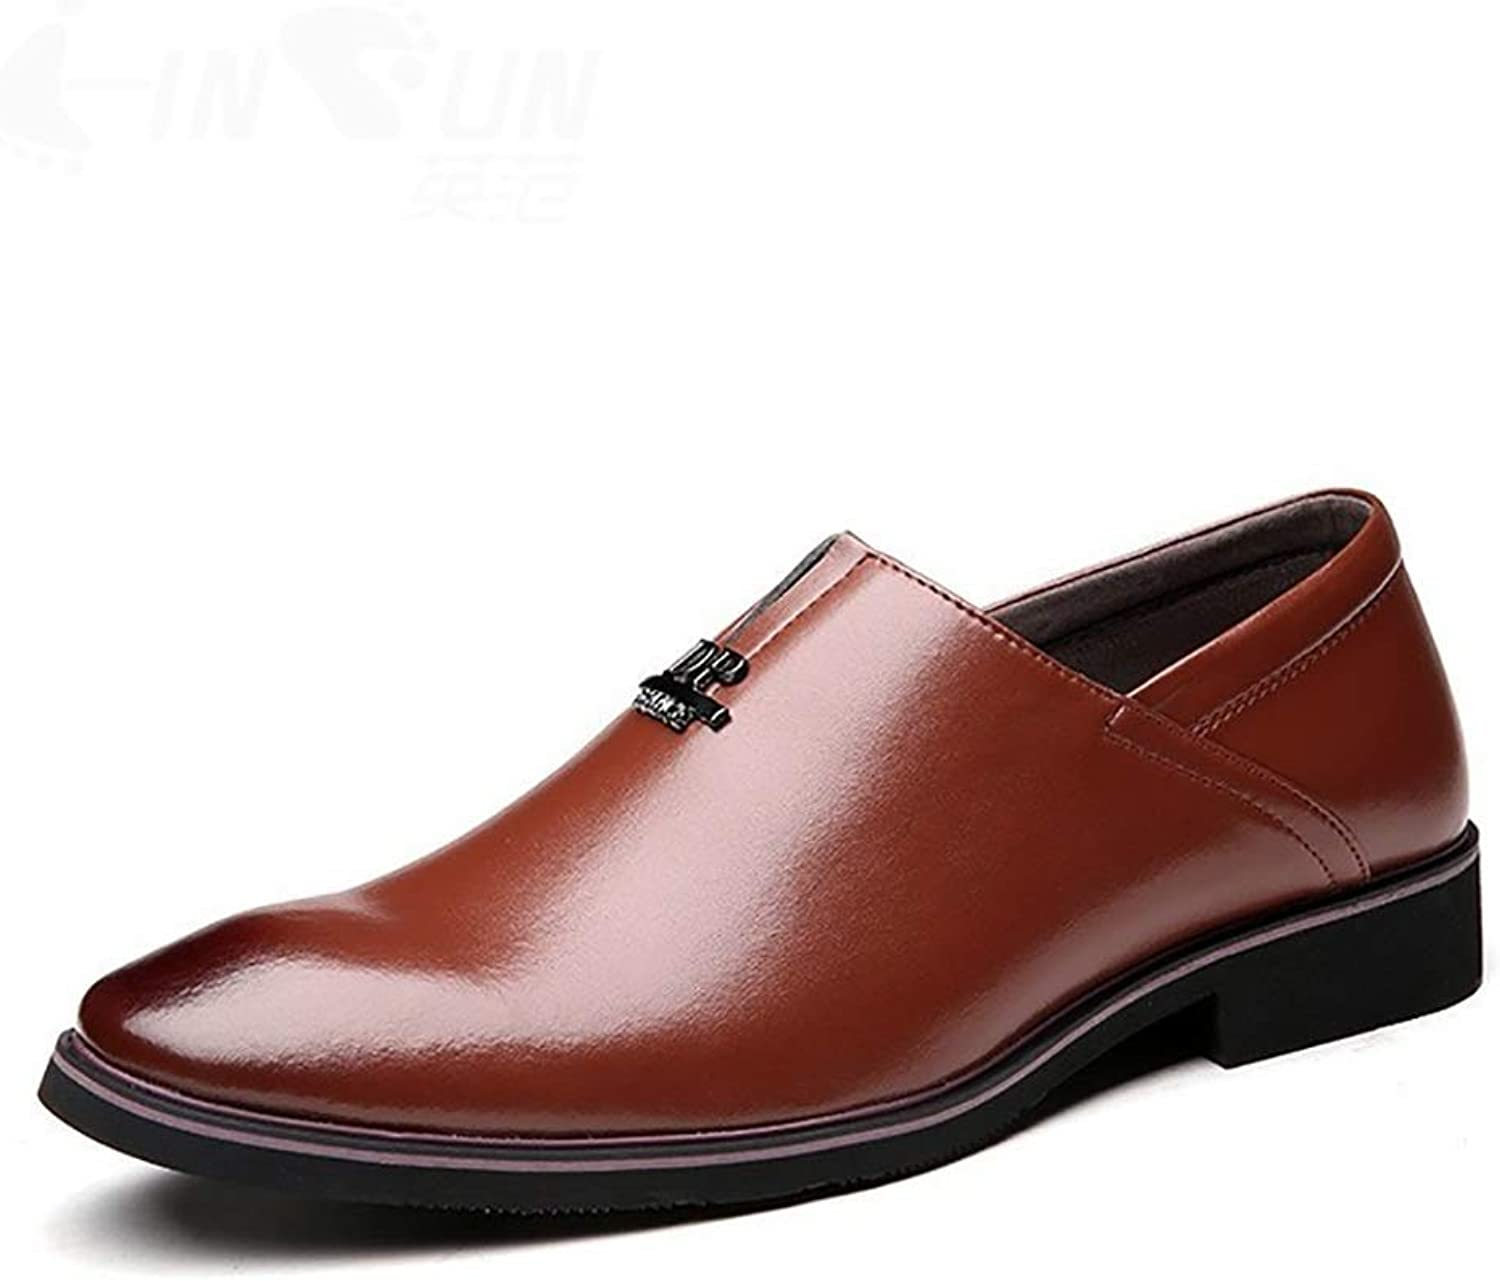 RJNSPx Leather shoes Men's leather shoes two layers of leather,gentleman business mens dress shoes (color   Brown, Size   8.5 UK)